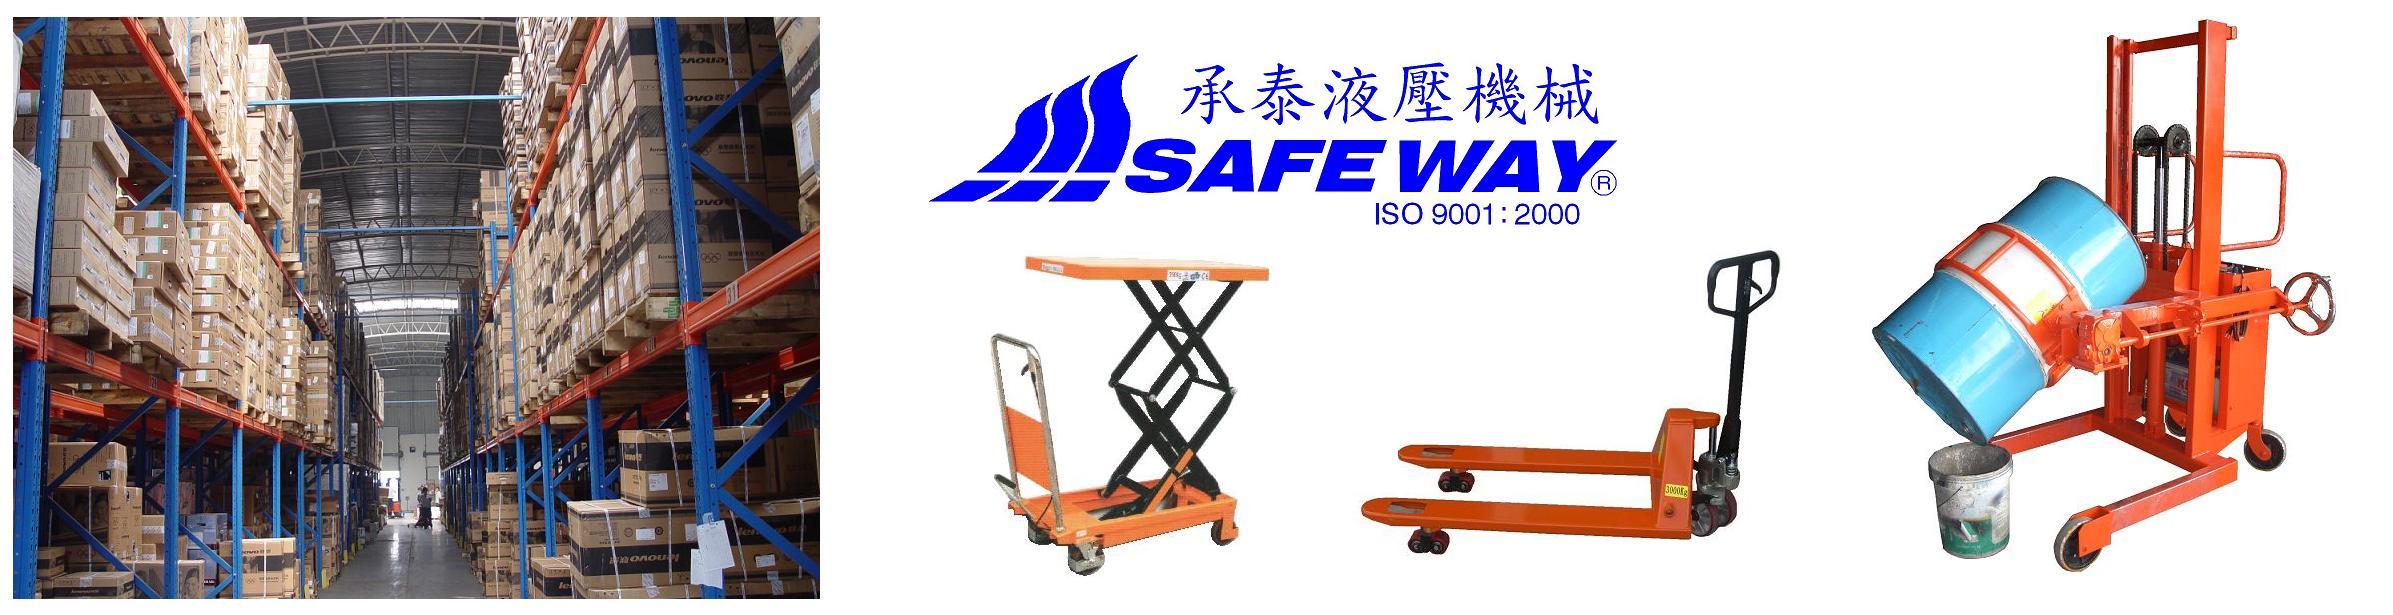 STACKER - HAND PALLE - LIFT TABLE - DOCK LEVELER - SAFE WAY